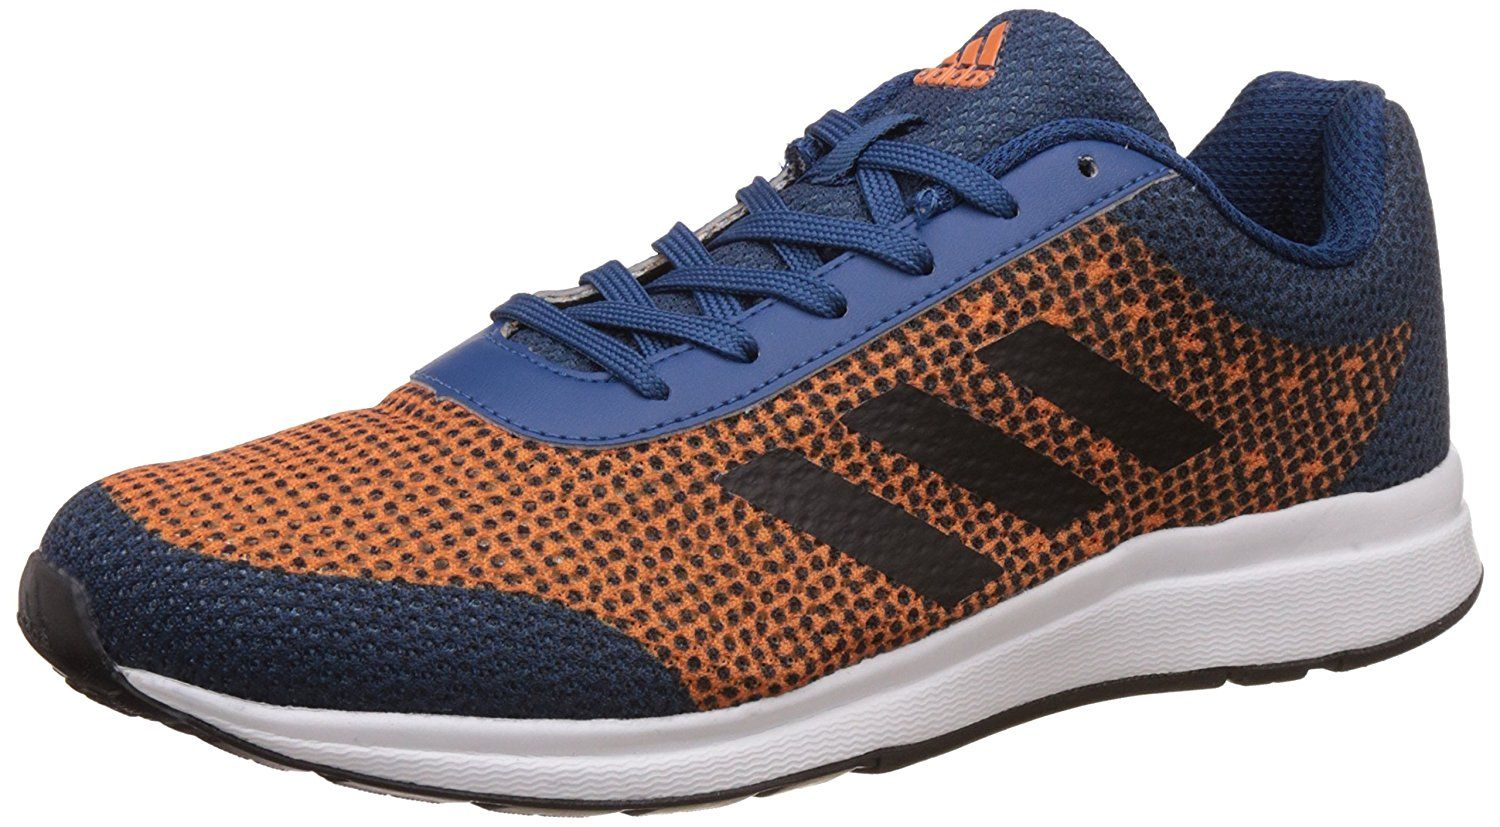 dbccb87c33e4 adidas Men s Adistark 1.0 Running Shoes  Buy Online at Low Prices in India  - Amazon.in